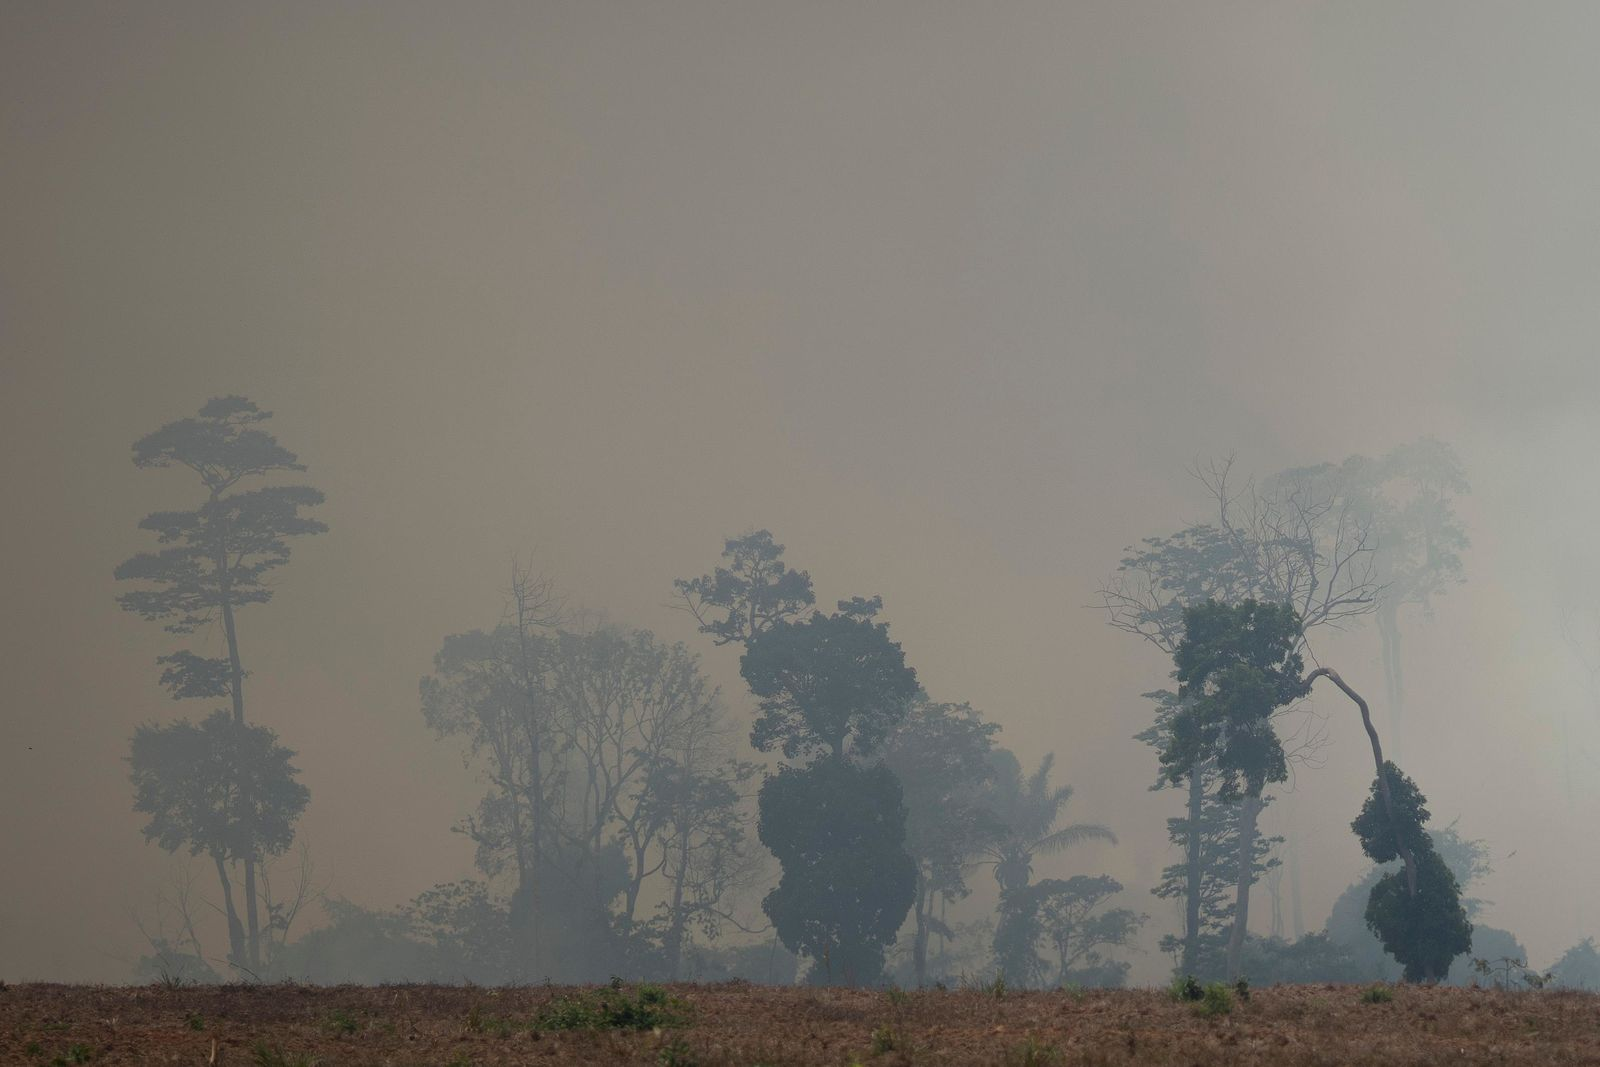 Fire consumes a field in Novo Progresso, Para state, Brazil, Saturday, Aug. 24, 2019. Under increasing international pressure to contain fires sweeping parts of Amazon, Brazilian President Jair will use of the military to battle the massive blazes. (AP Photo/Leo Correa)